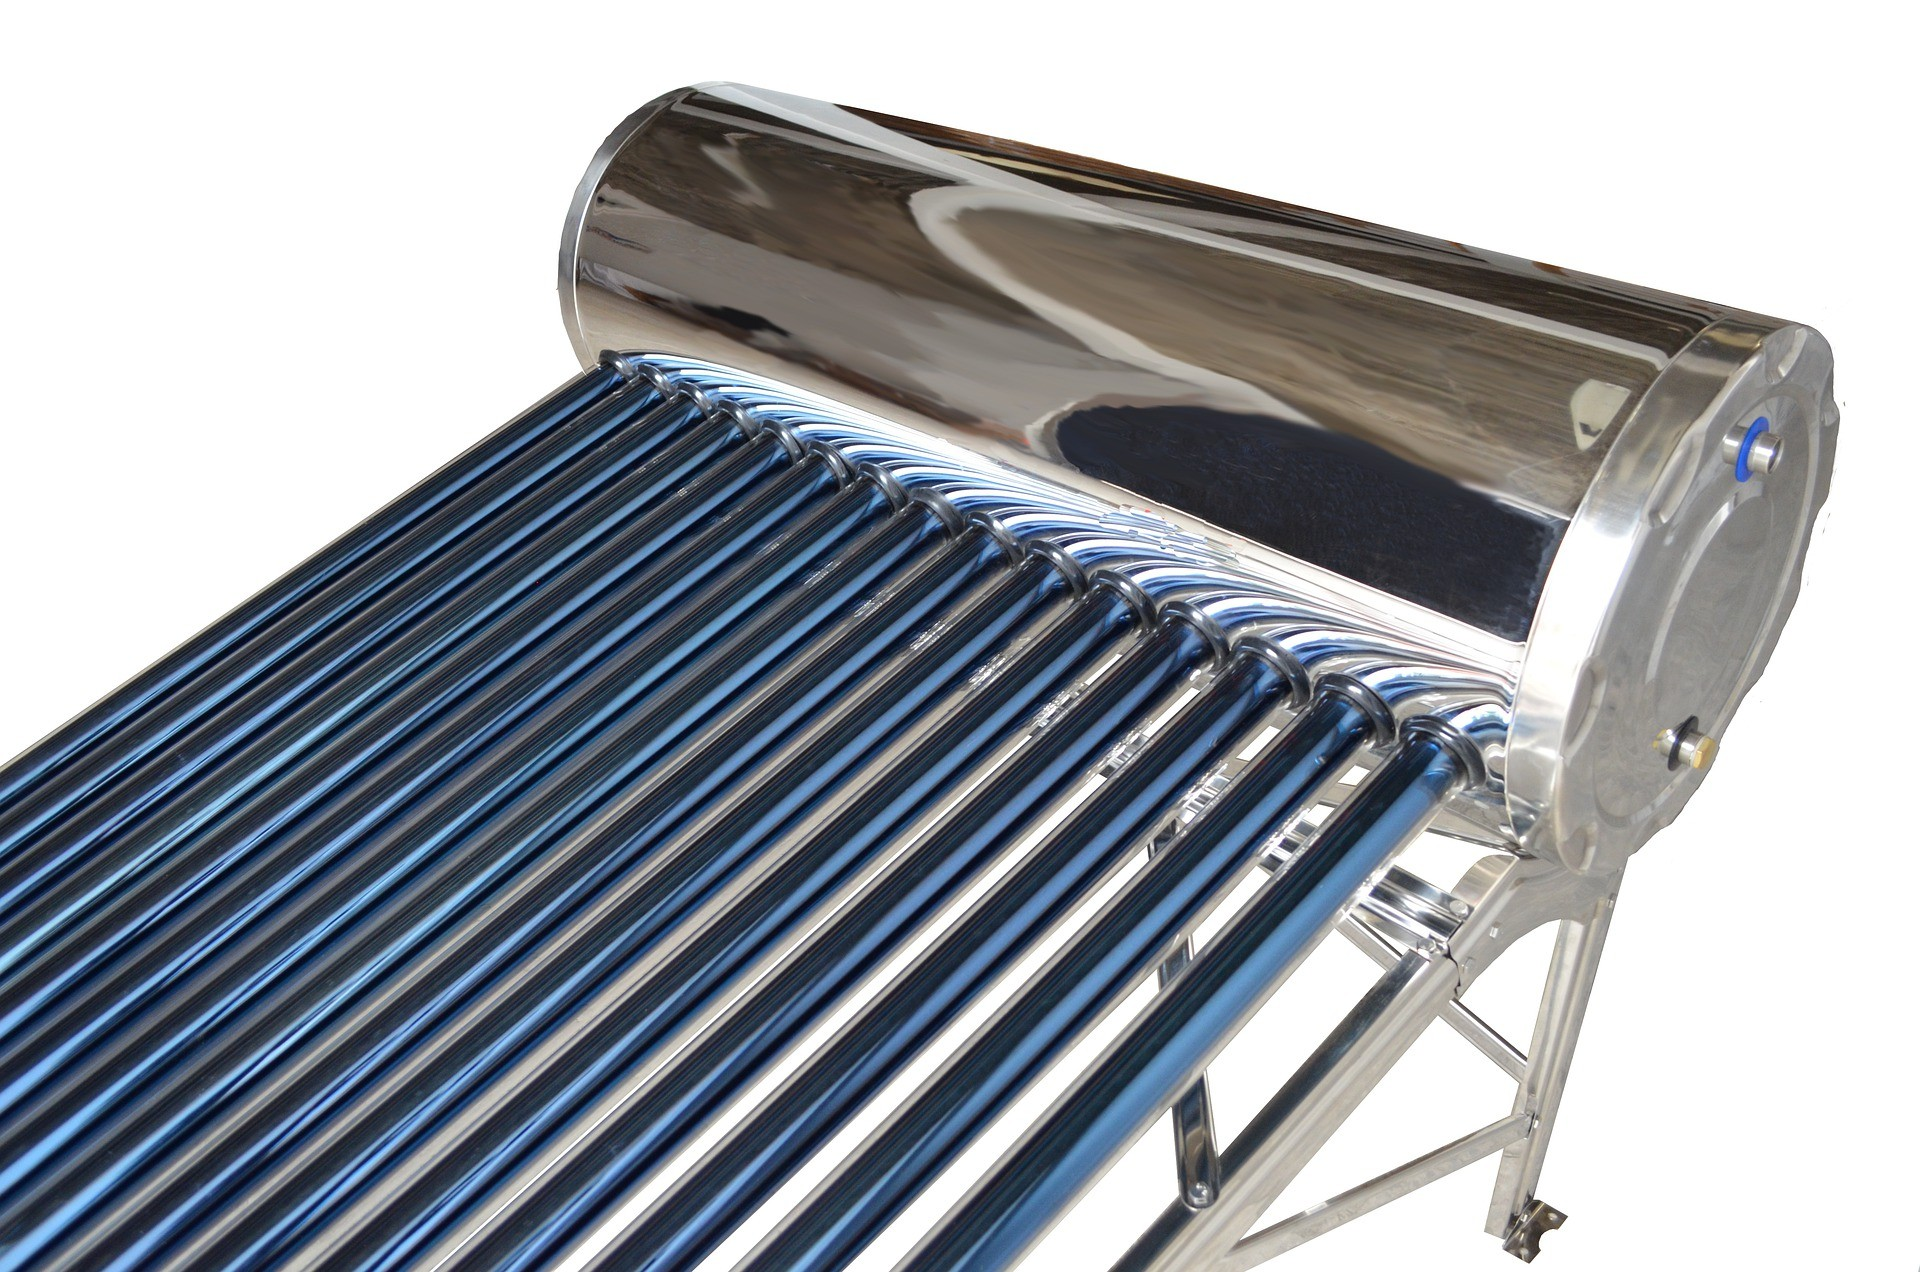 solar water heater operating at night